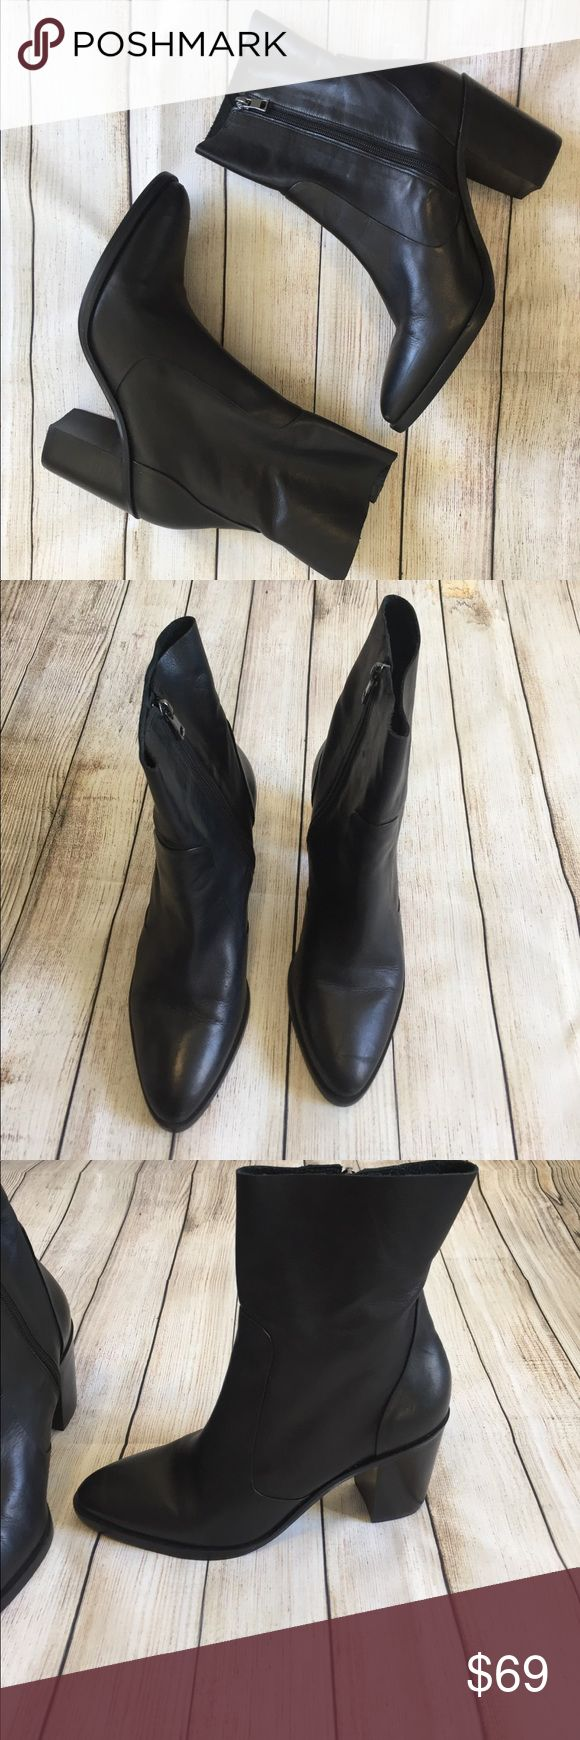 Steve Madden | Mareena Ankle Boots Steve Madden Black Mareena Ankle Boots! SO CUTE! excellent condition, slight ware on the bottoms. Size 10M. Heel: 3.5 inches. ⭐️offers welcome⭐️ Steve Madden Shoes Ankle Boots & Booties